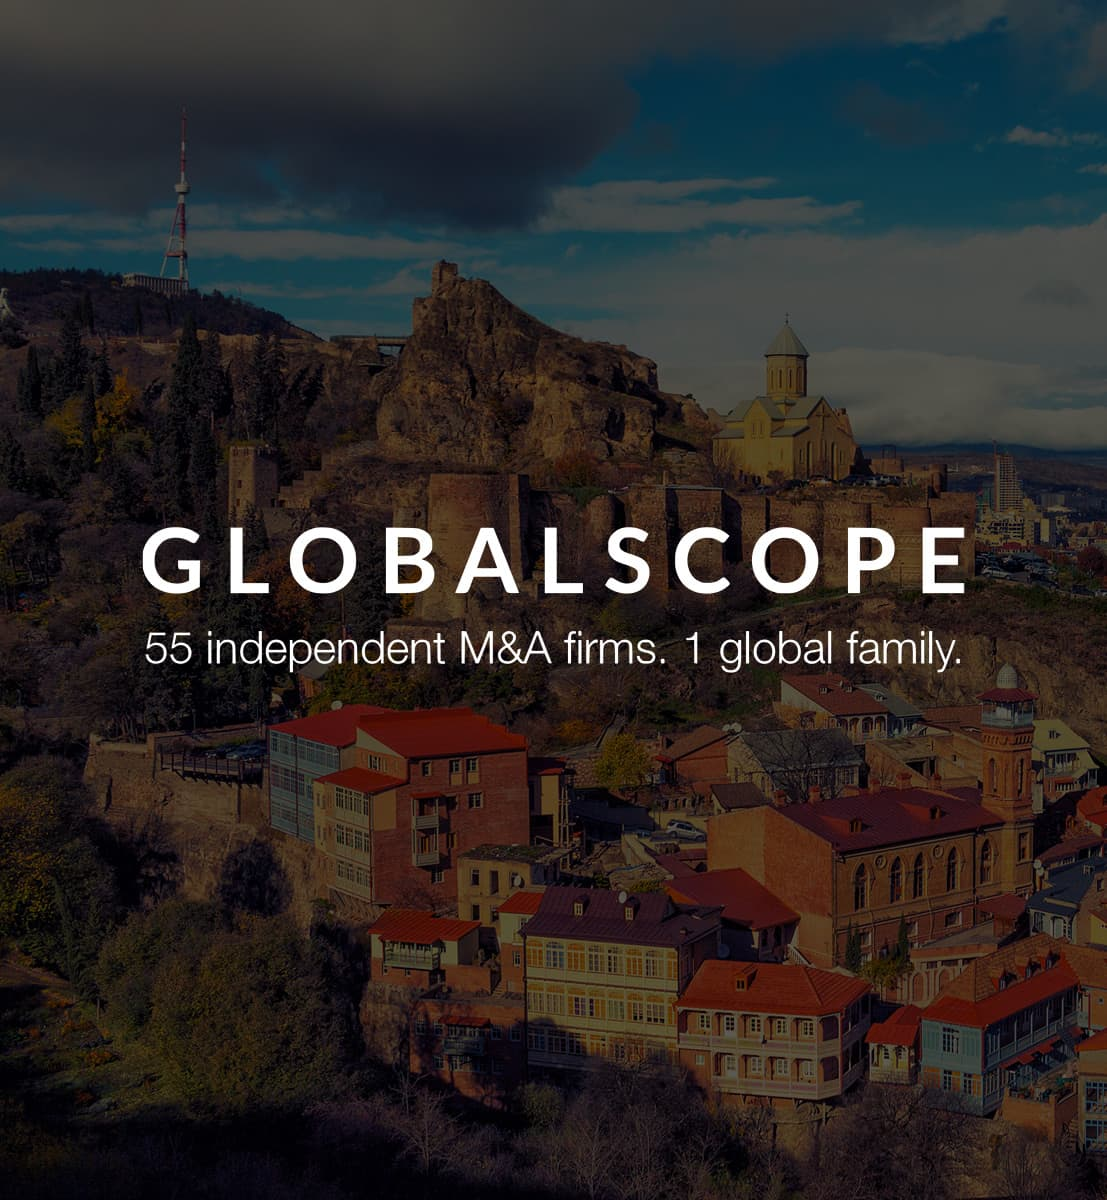 Globalscope welcomes new partner firms in Mexico and Bulgaria and is now present in 48 countries on all continents